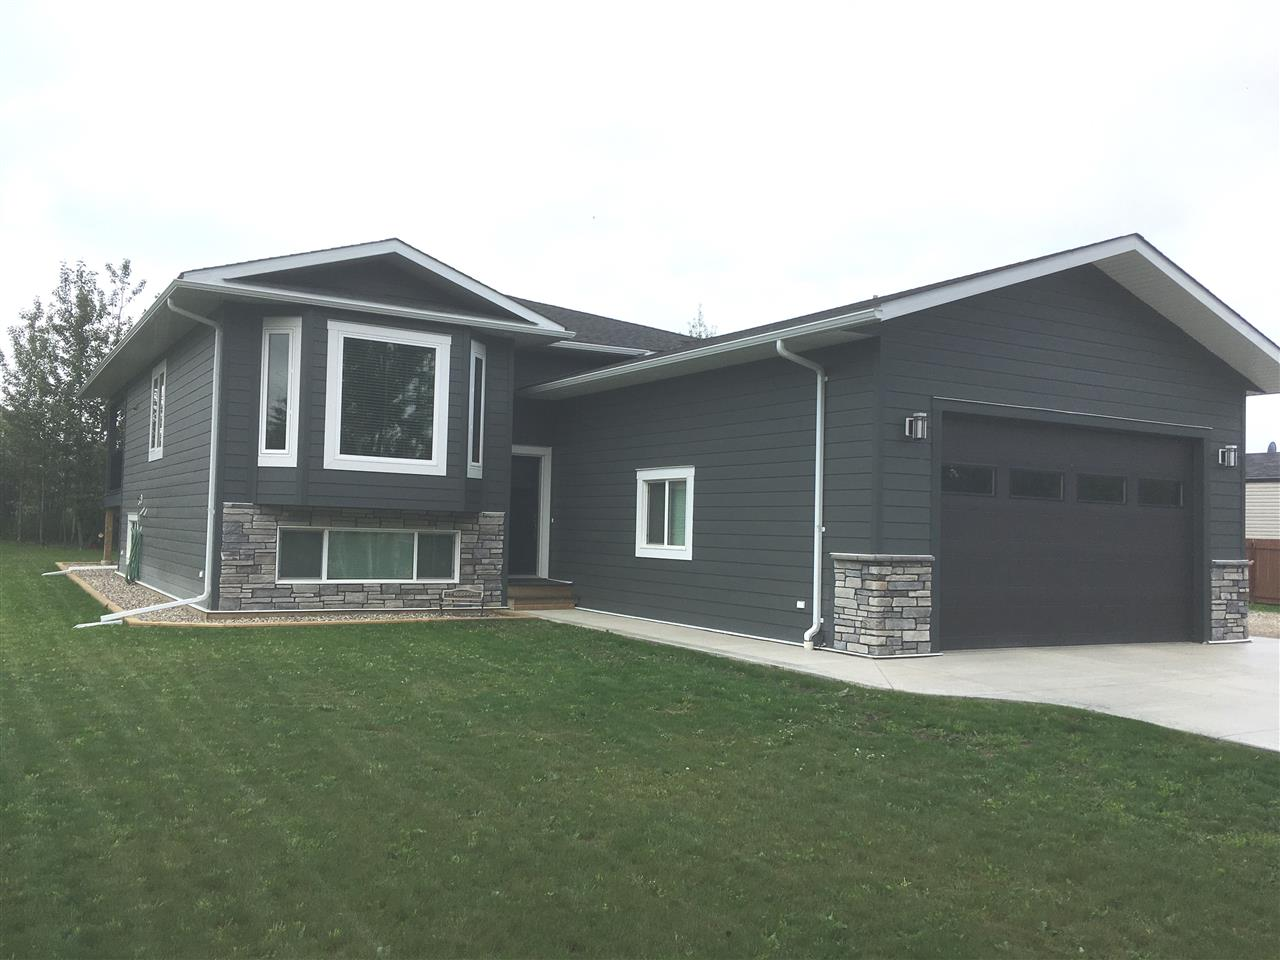 Main Photo: 9337 120 Avenue in Fort St. John: Fort St. John - Rural E 100th House for sale (Fort St. John (Zone 60))  : MLS® # R2190081